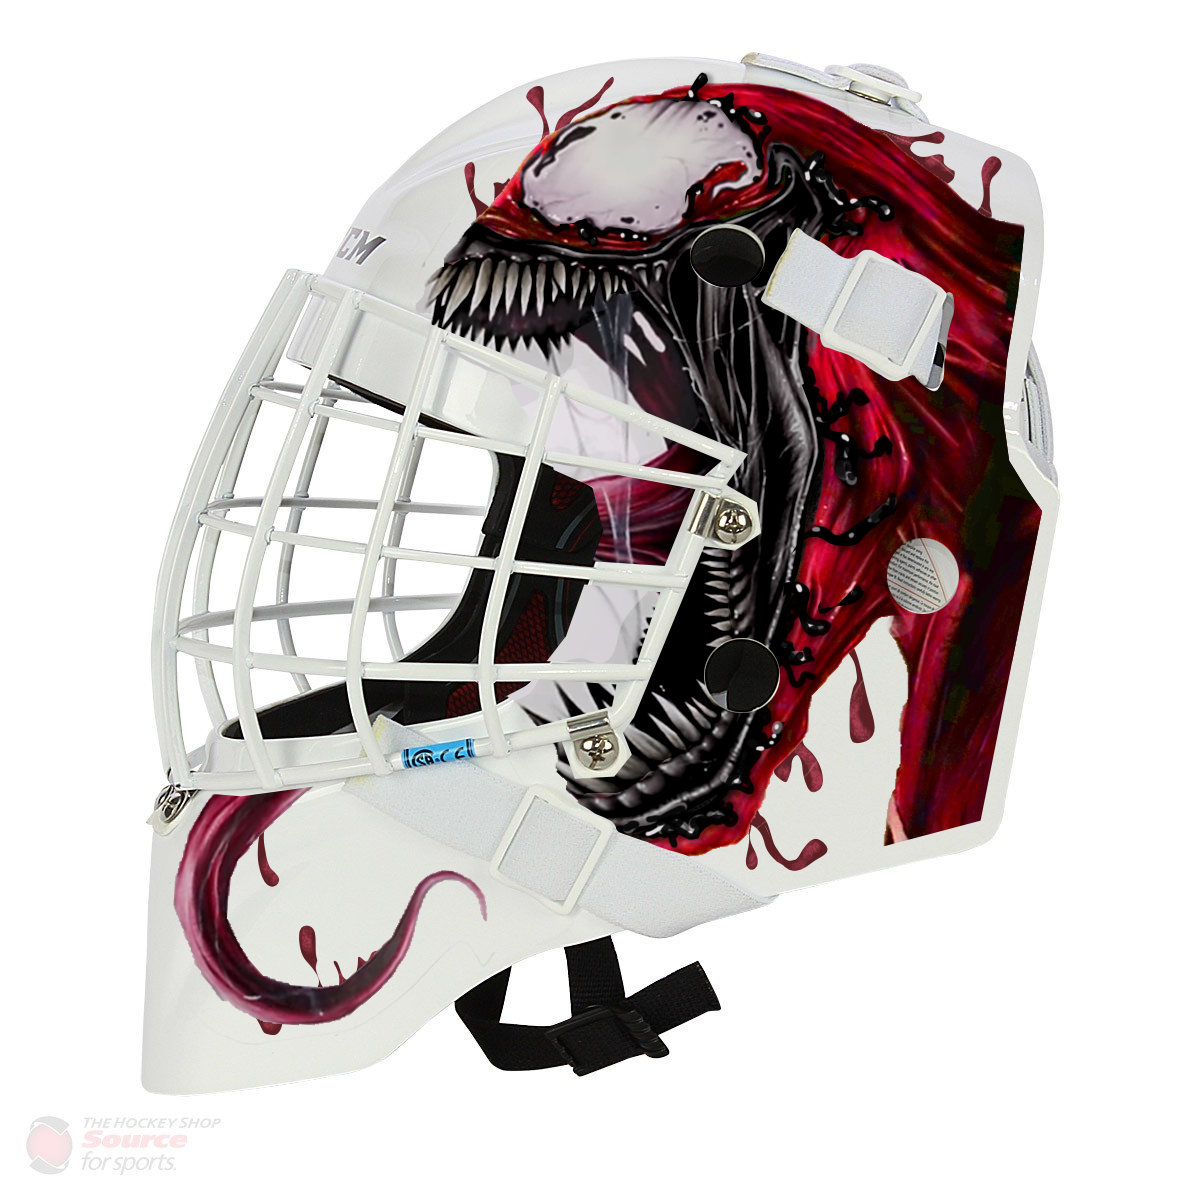 Marvel Spiderman Carnage Goalie Mask Design Art For Printed Vinyl Concept Goalie Mask Mask Design Goalie